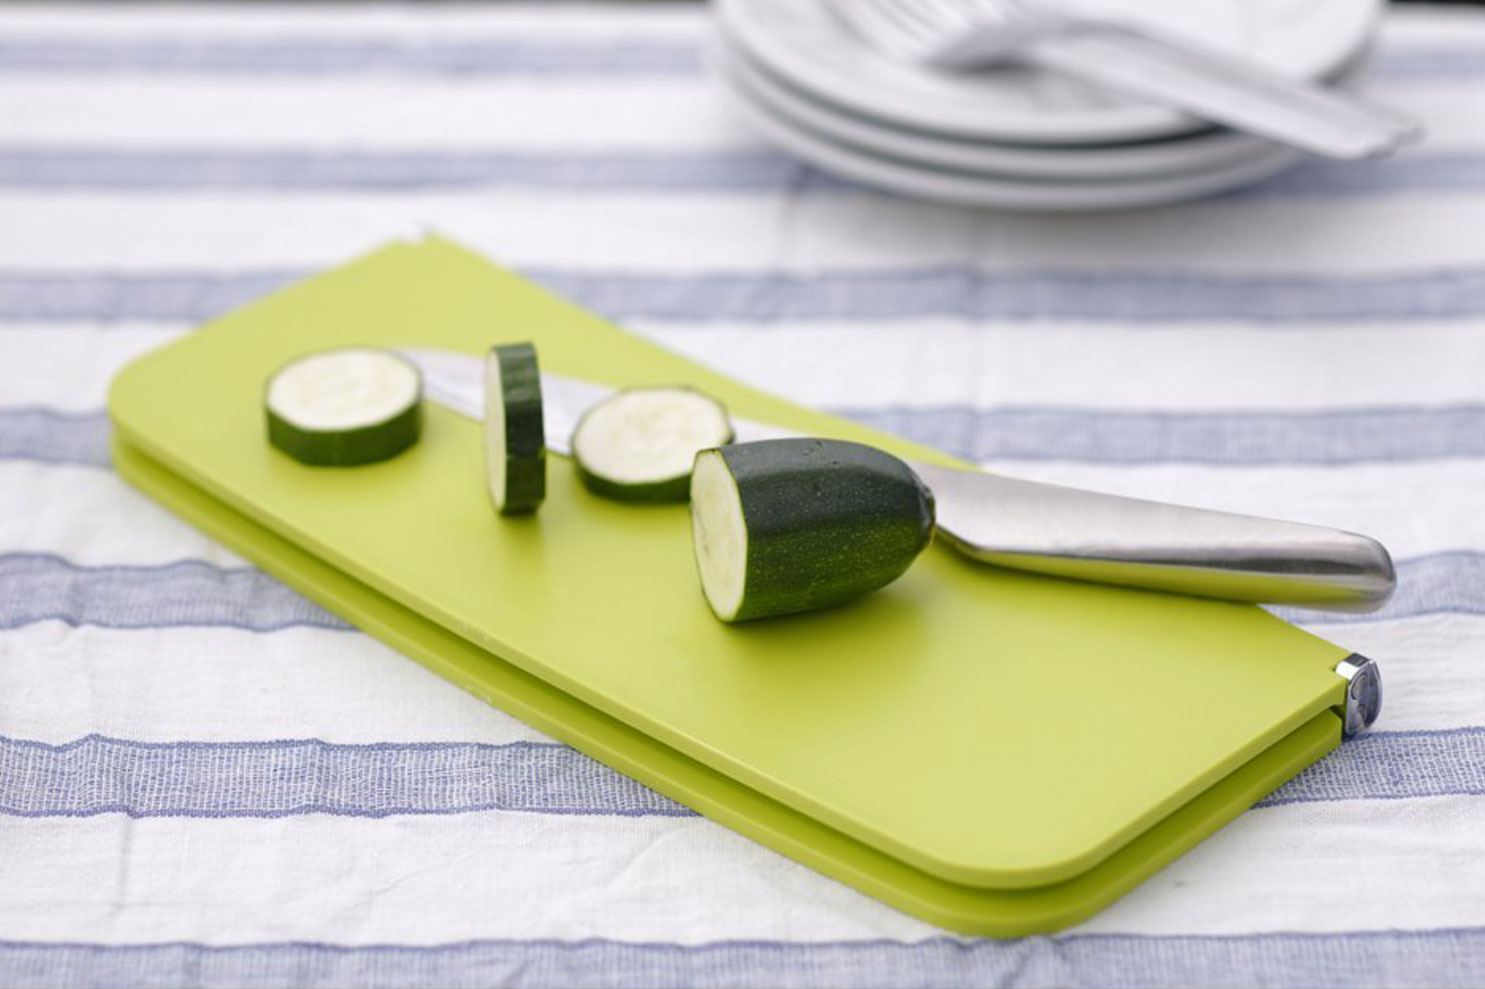 17-TulettDesign-Kaga-chopping-Board-3